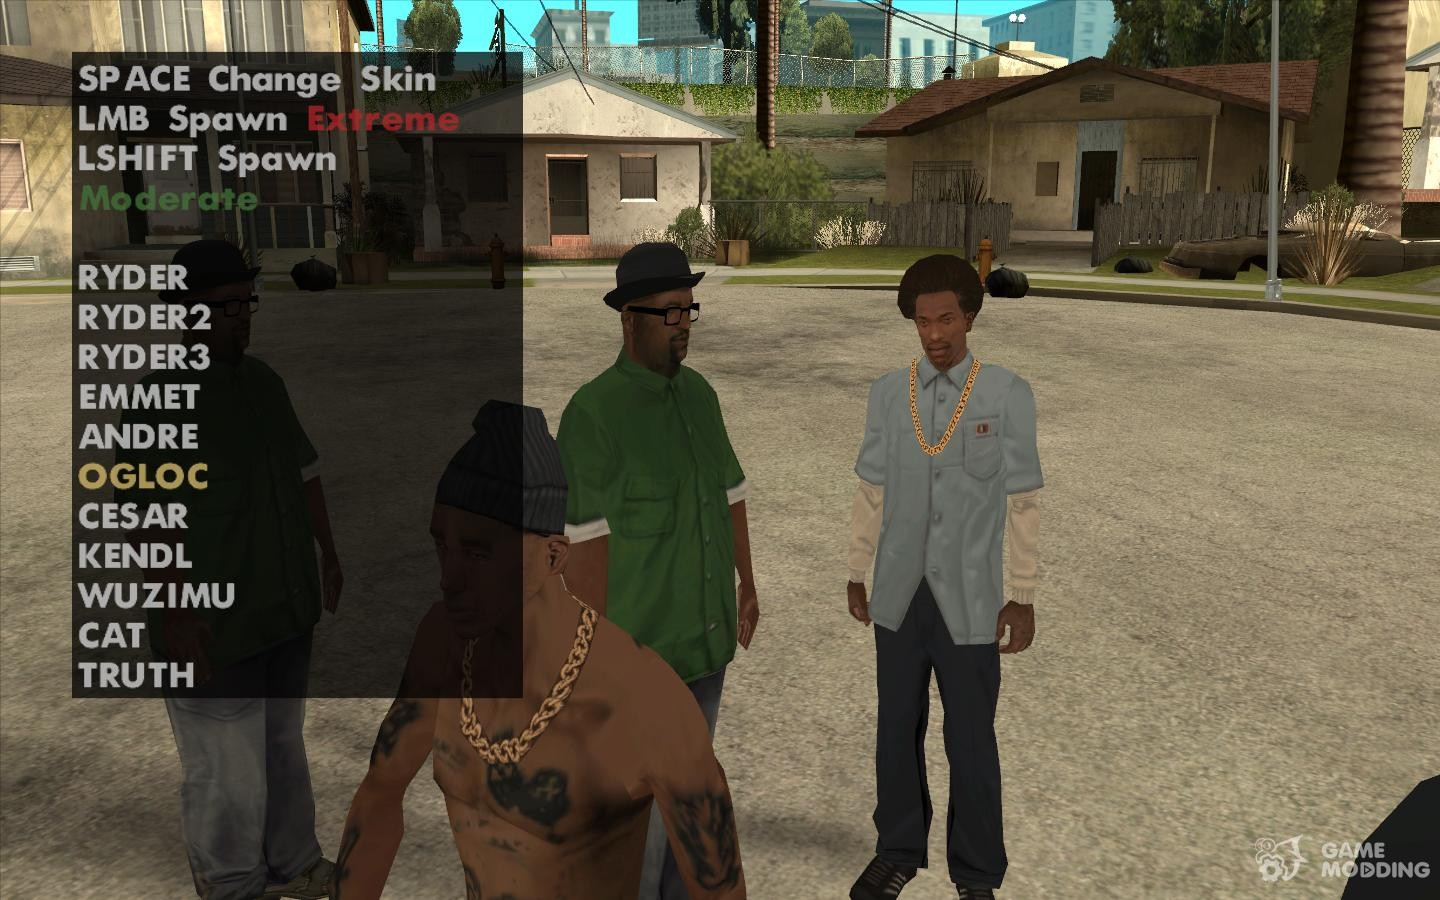 gta san andreas skin selector v2.1 free download